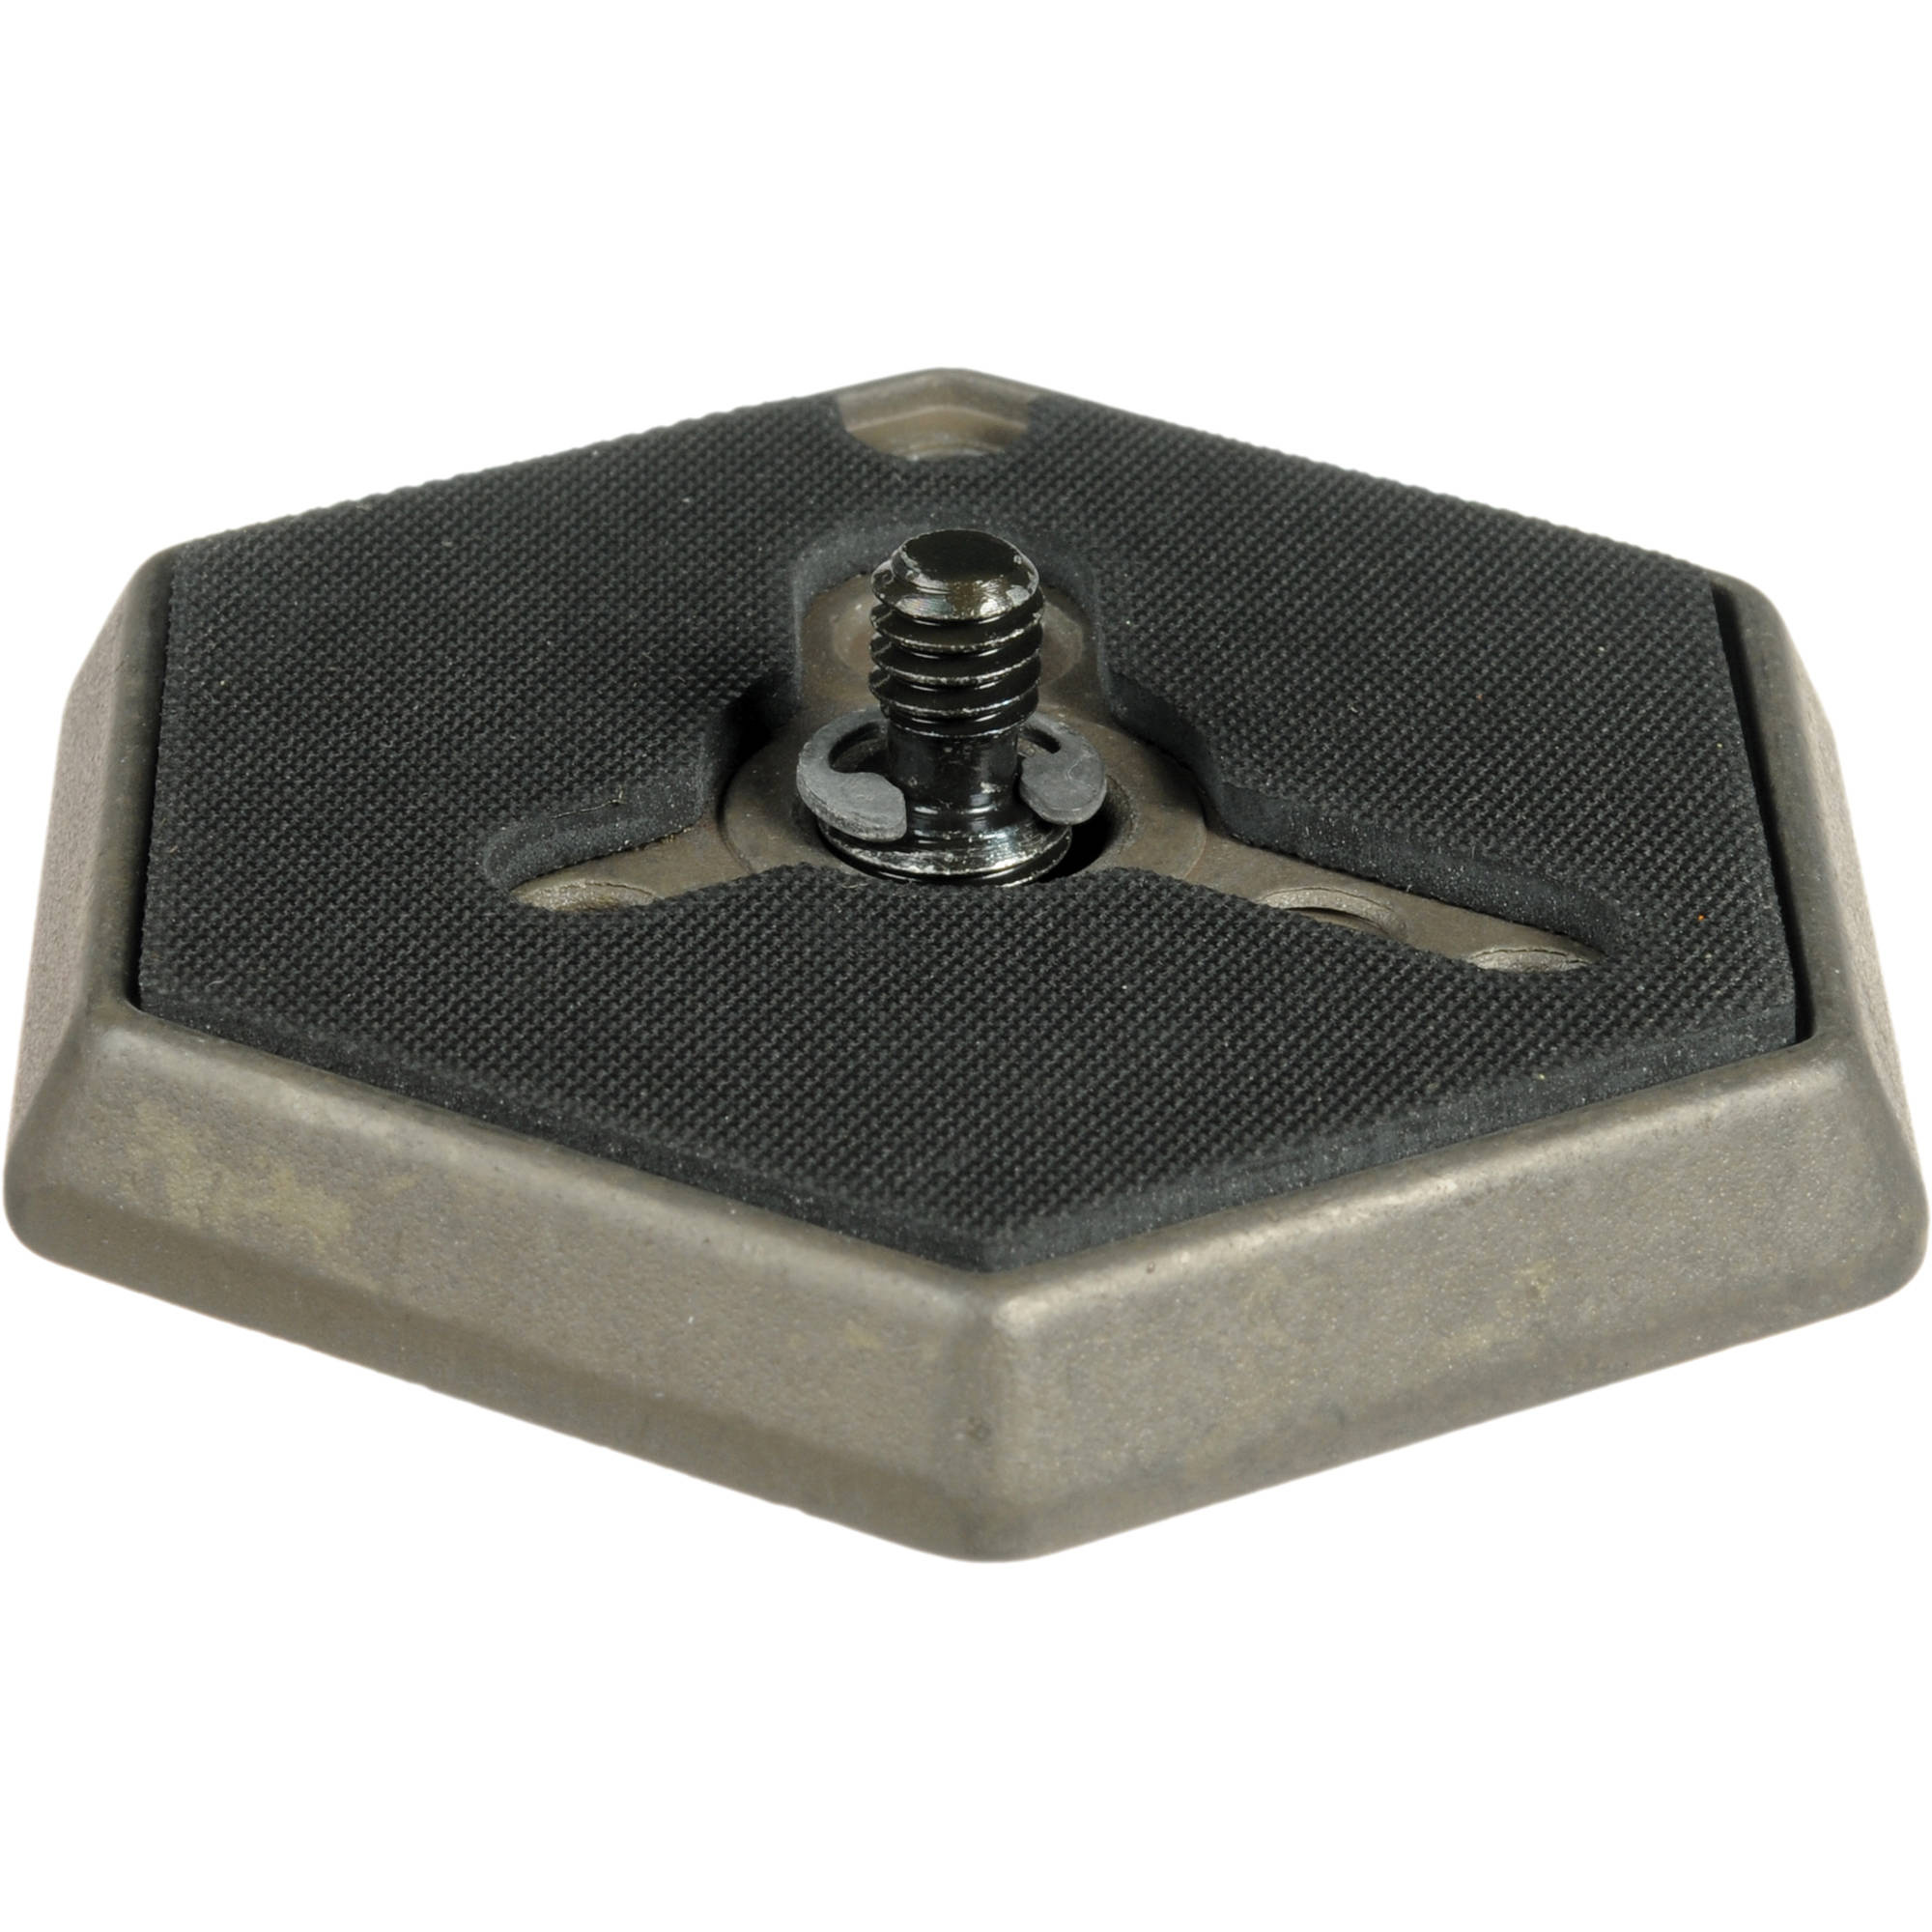 Manfrotto 030-14 - Hexagonal Adapter Plate